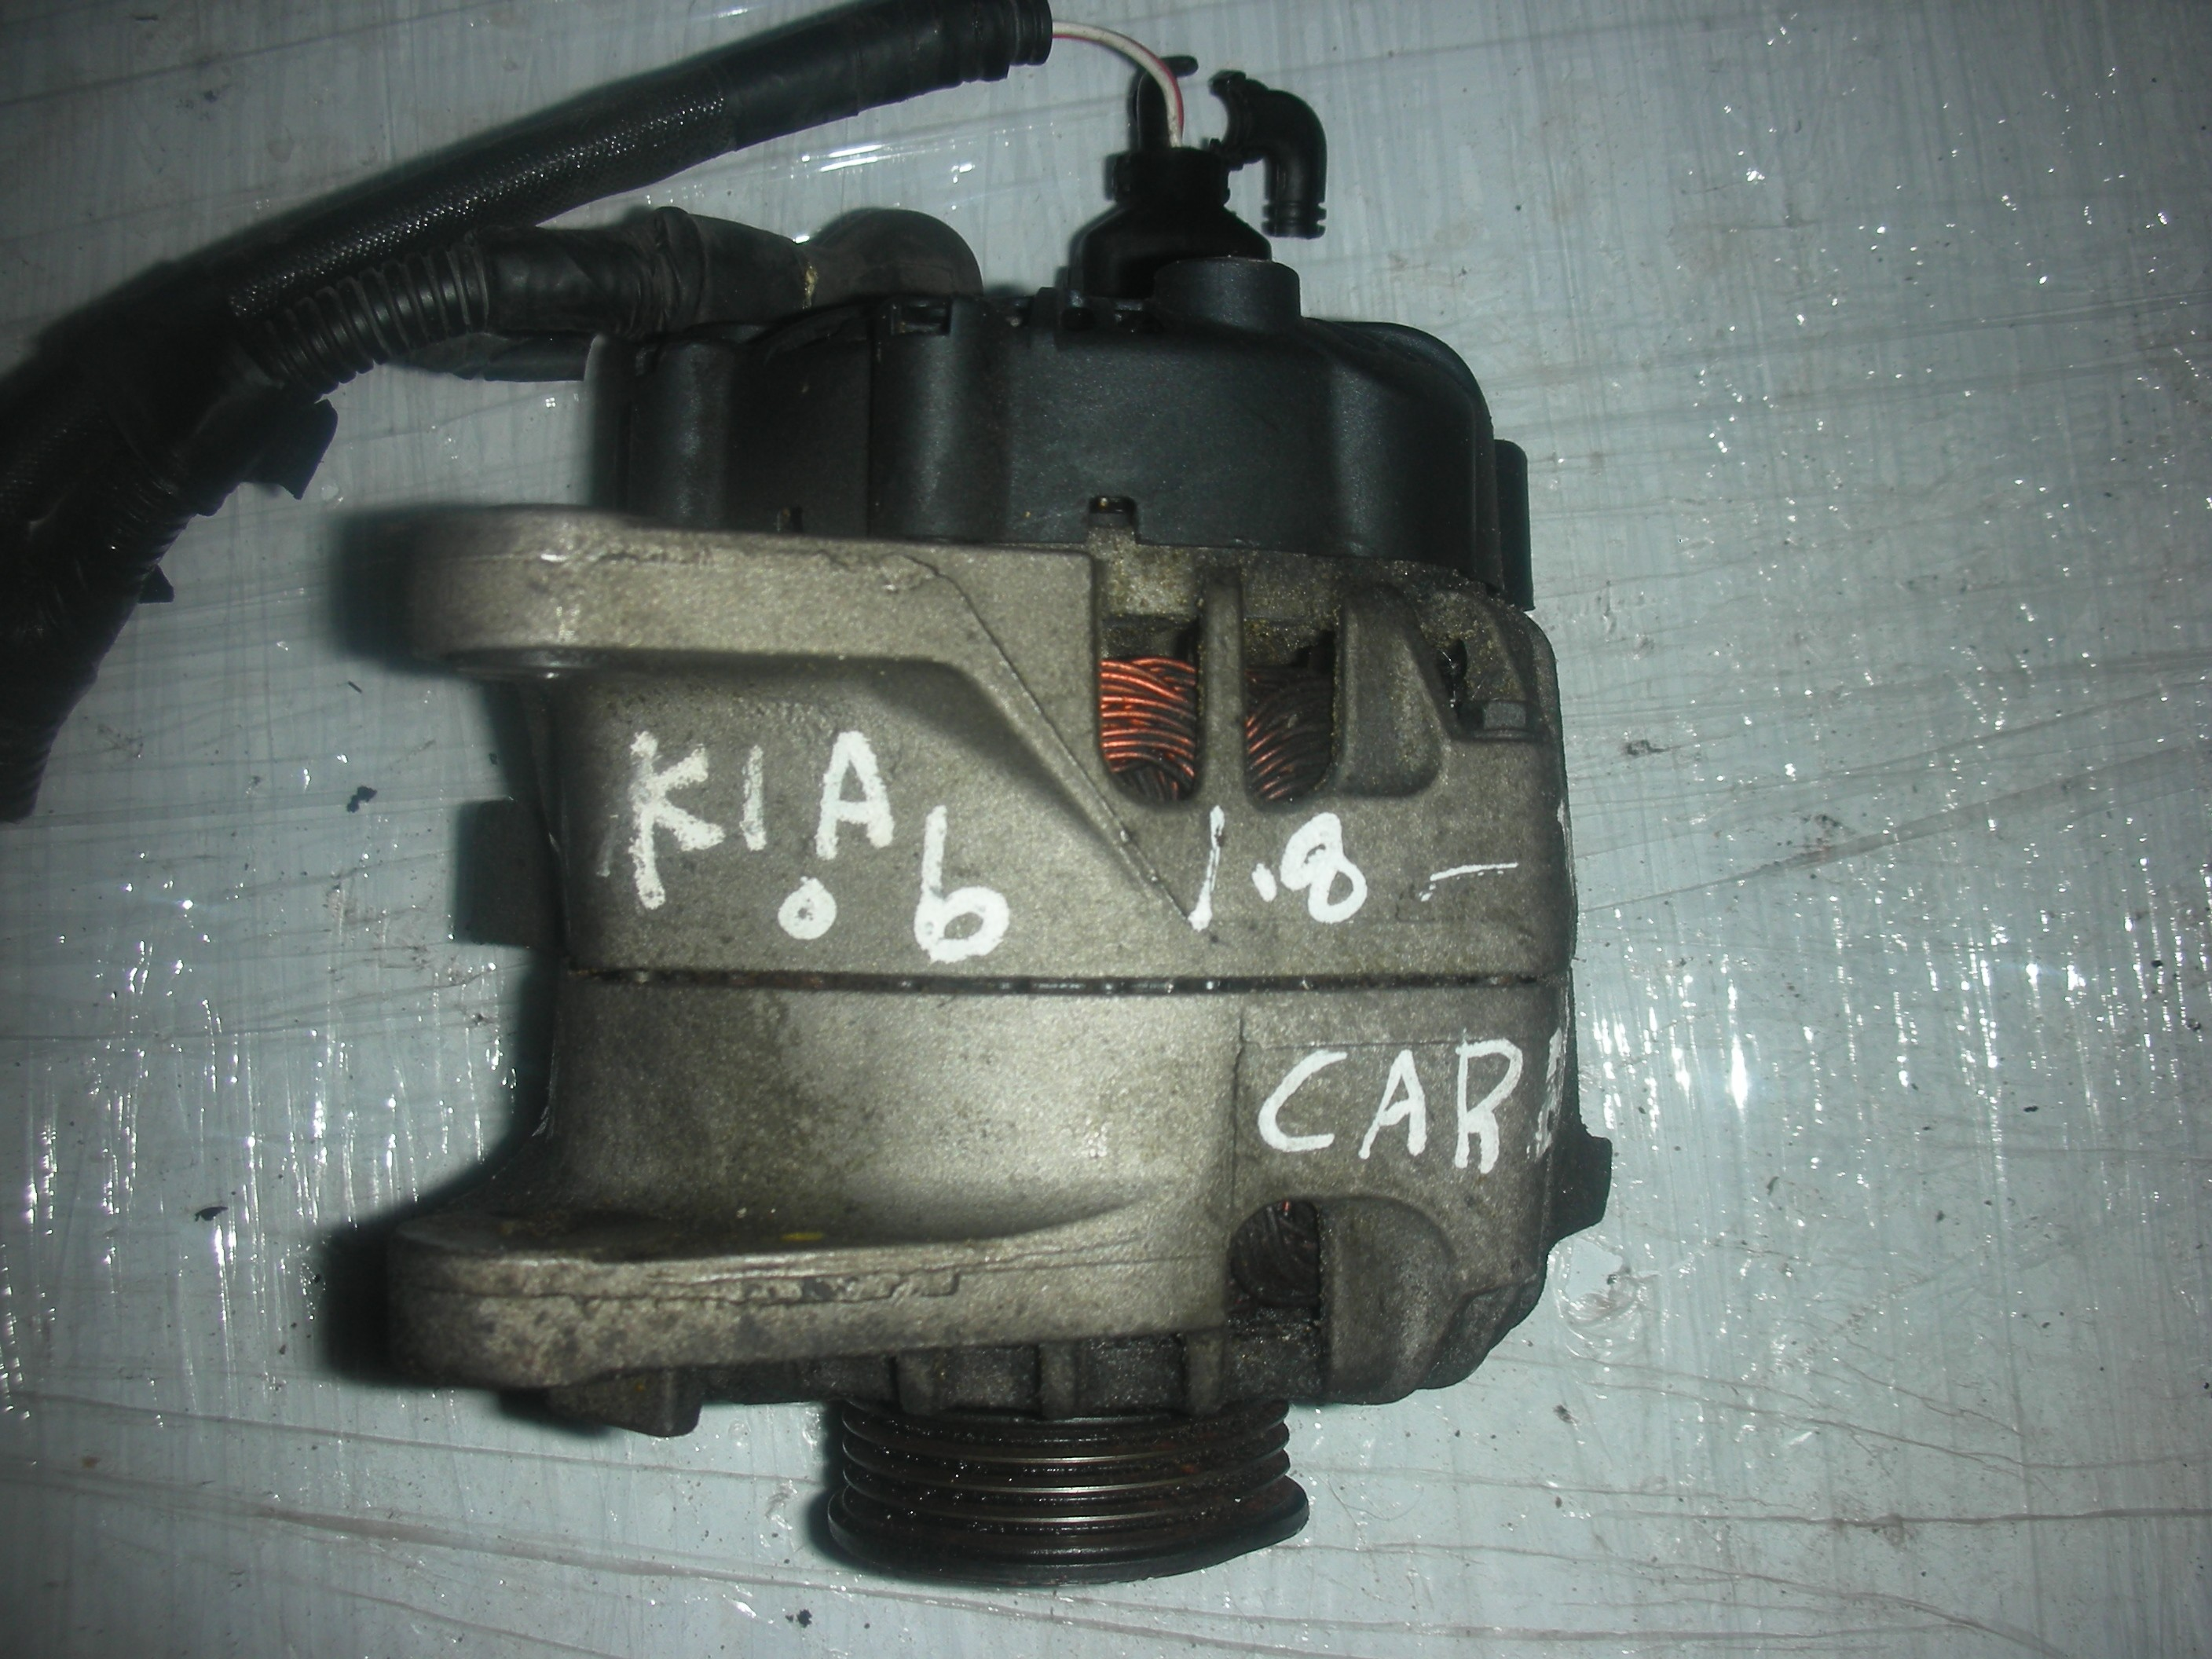 KIA CARENS 1800 CC PETROL MANUAL ALTERNATOR 2003-2006.